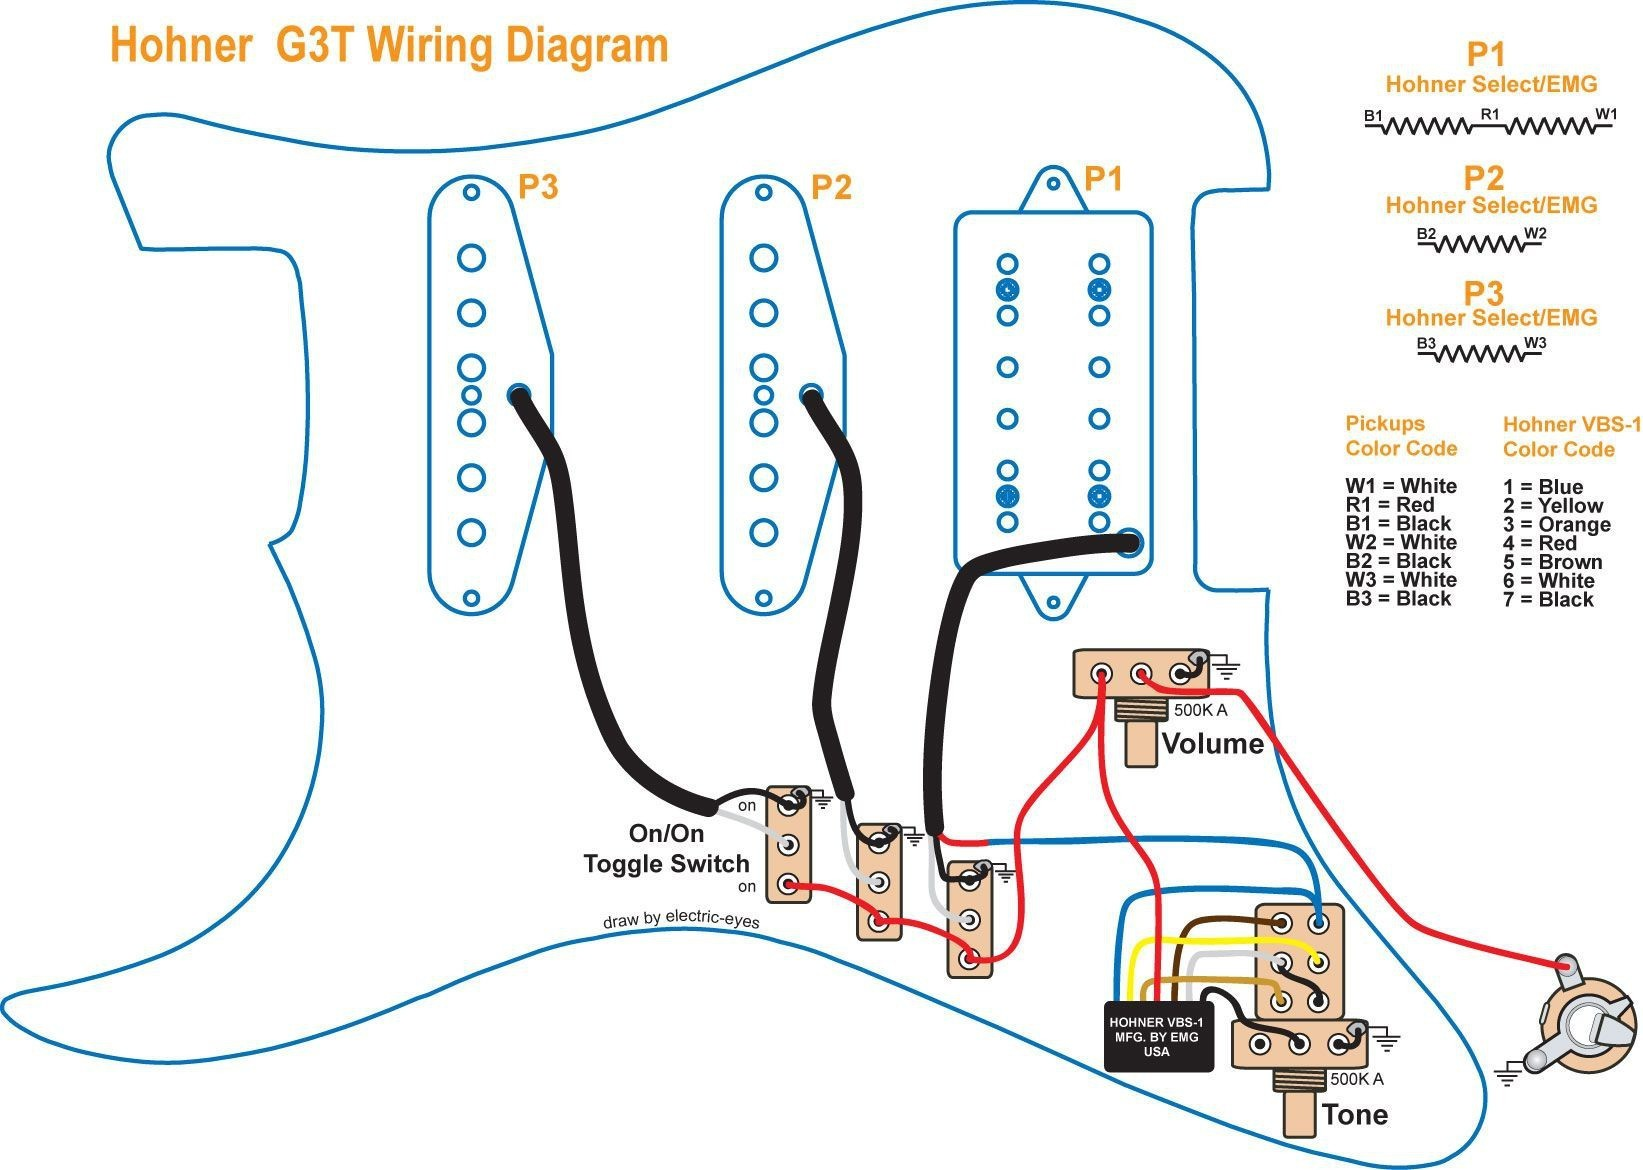 Pacific Yamaha Pickup Wiring Diagrams - Wiring Diagrams Options fear-fraud  - fear-fraud.hensemble.it | Guitar Wiring Diagram For Yamaha |  | hensemble.it